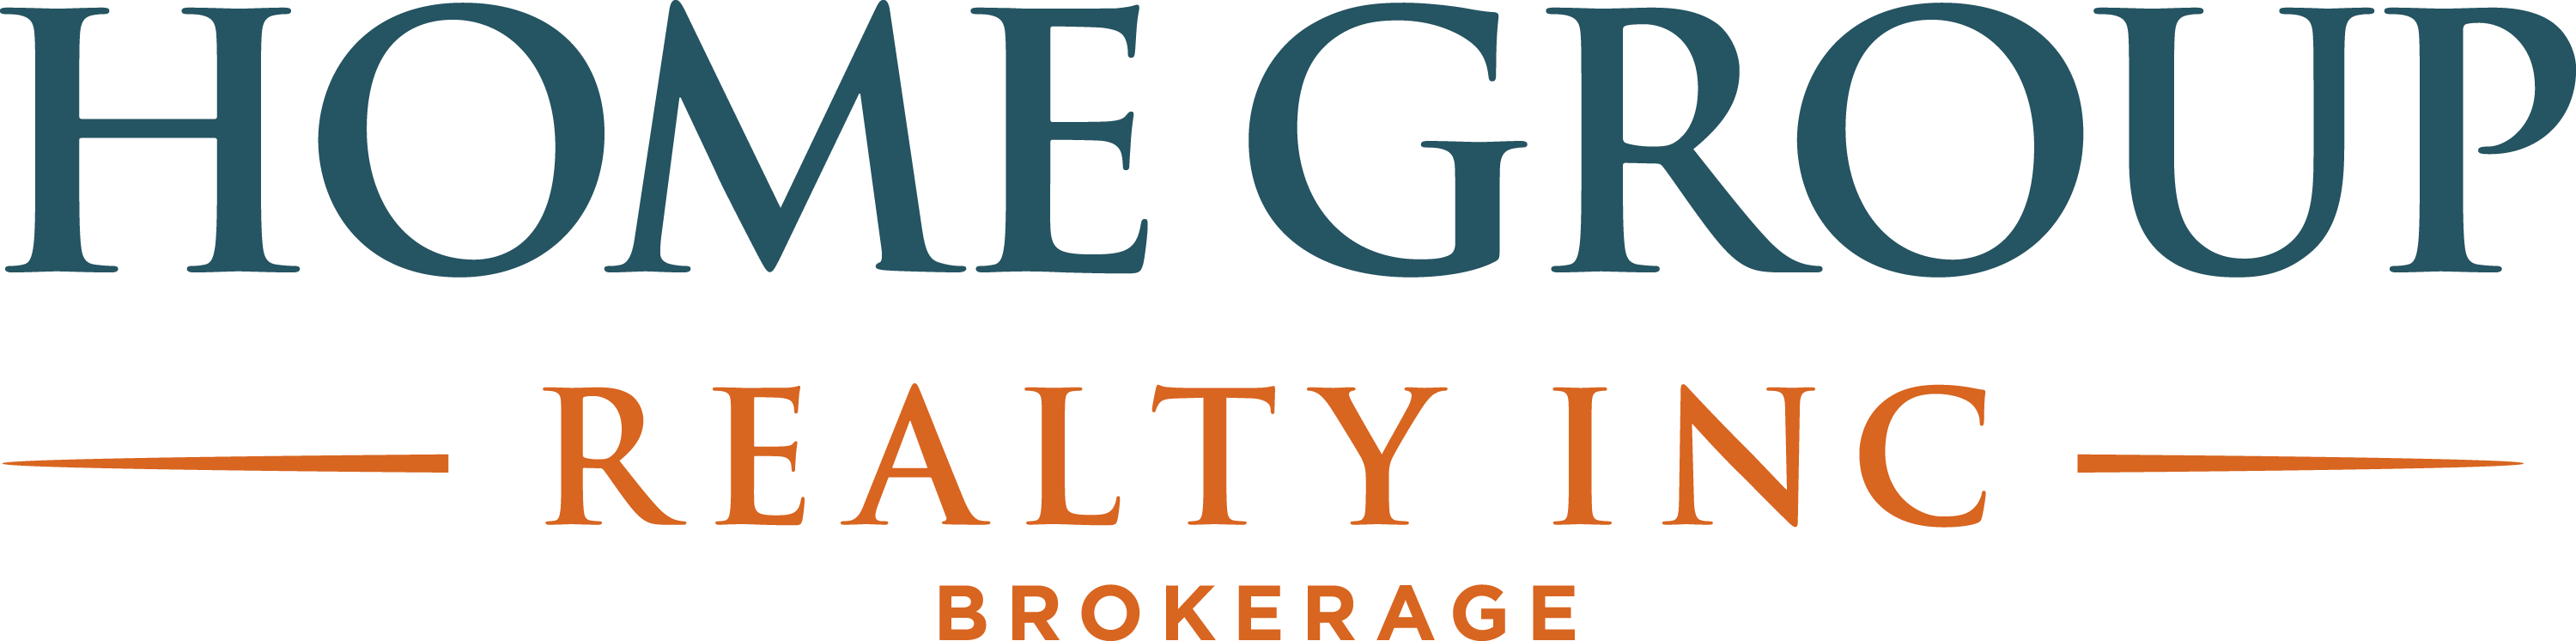 Home Group Realty